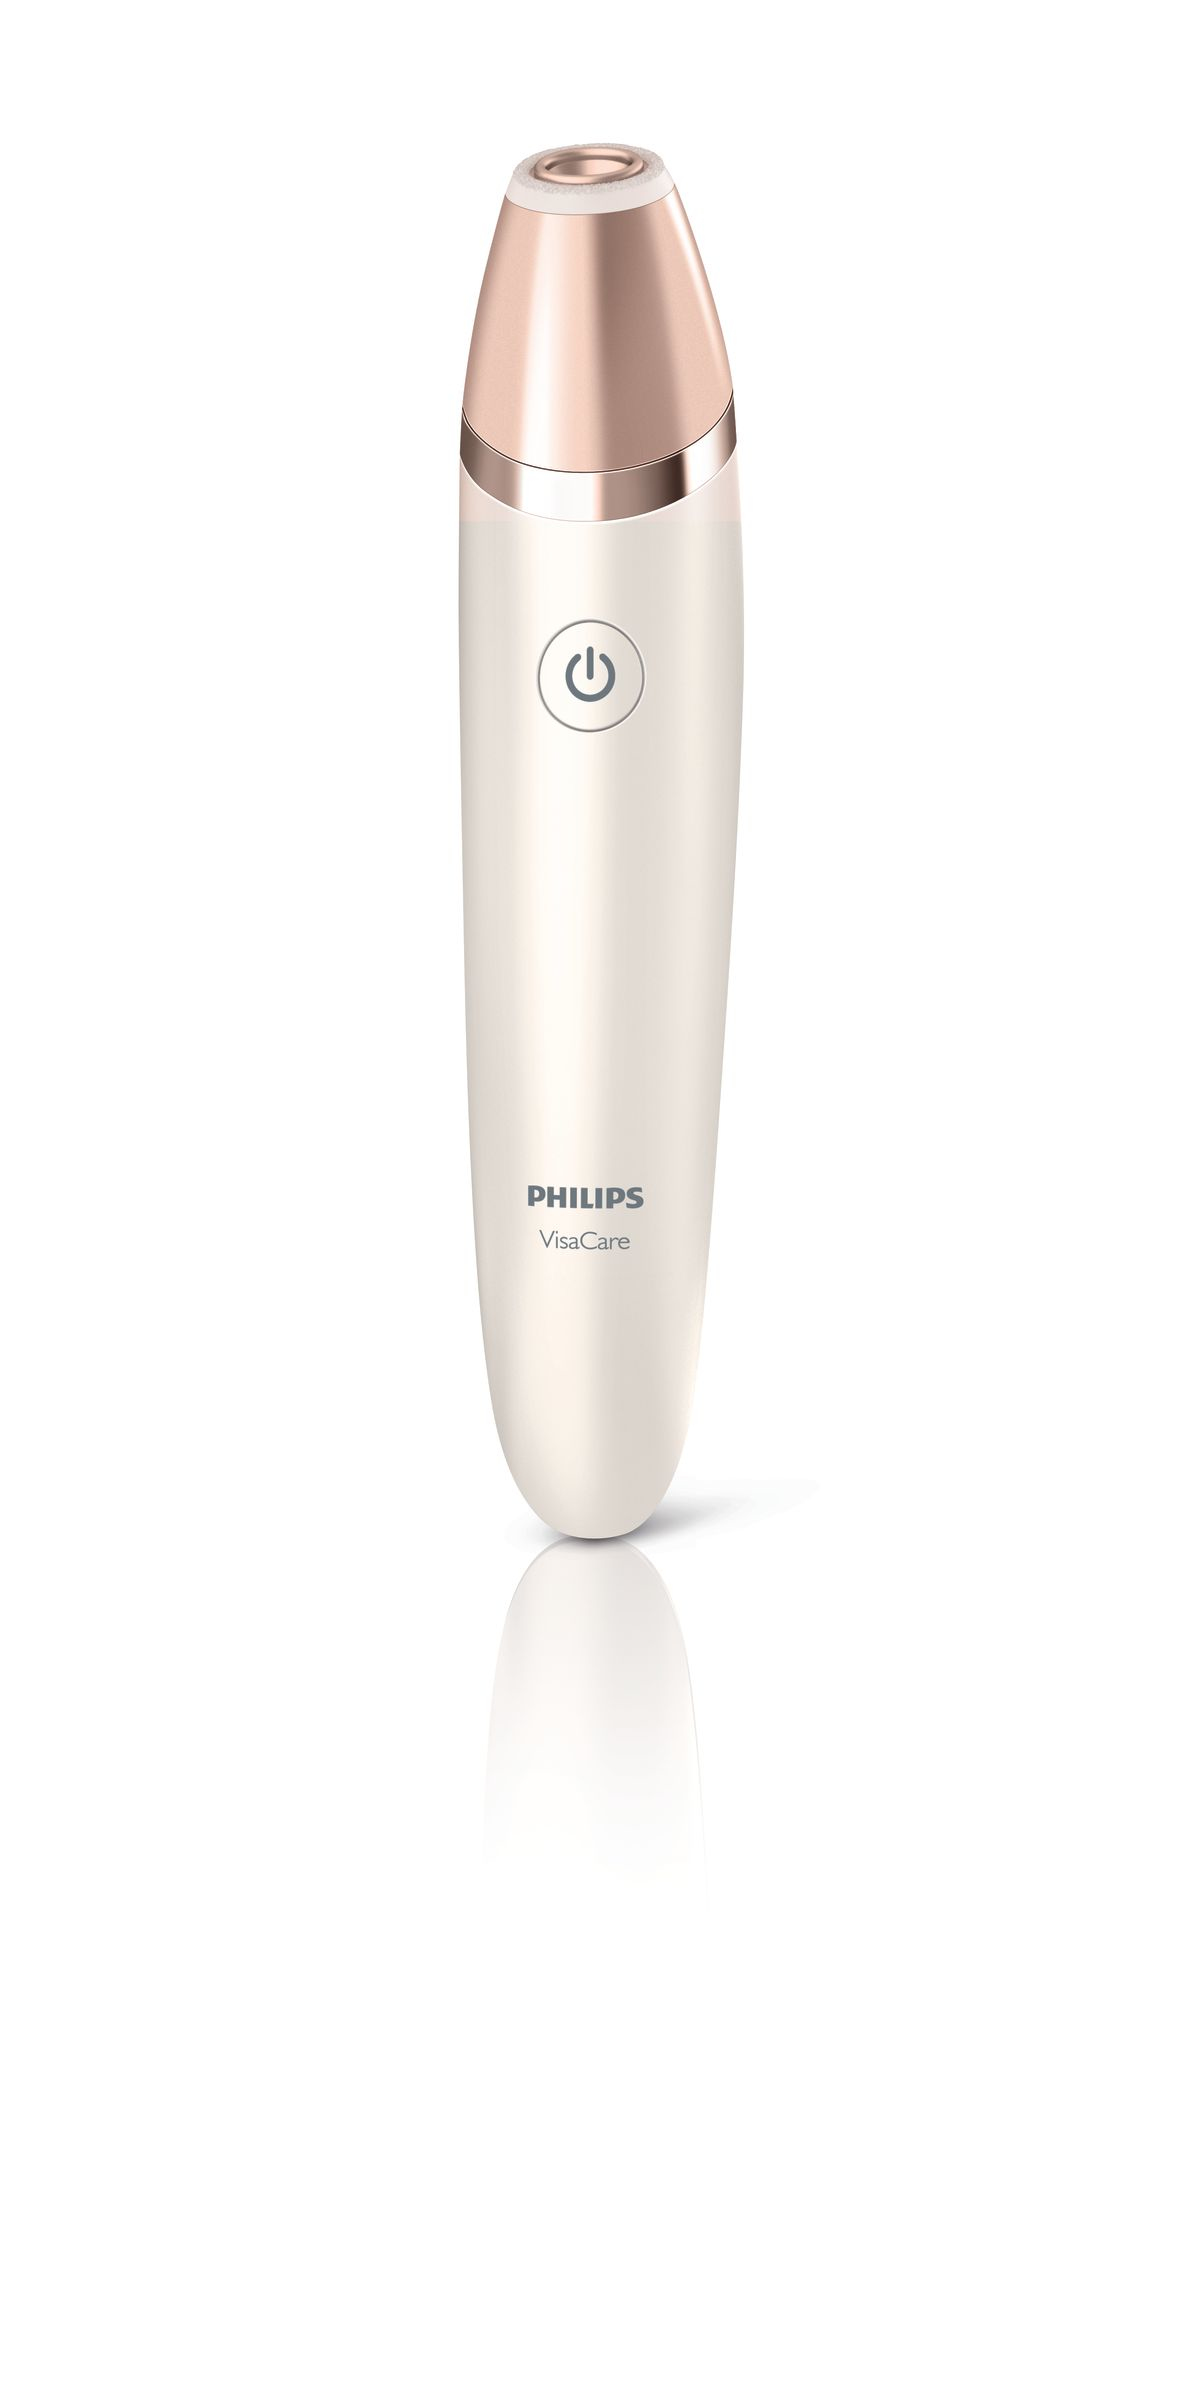 Philips VisaCare SC6240/01 skin care appliance